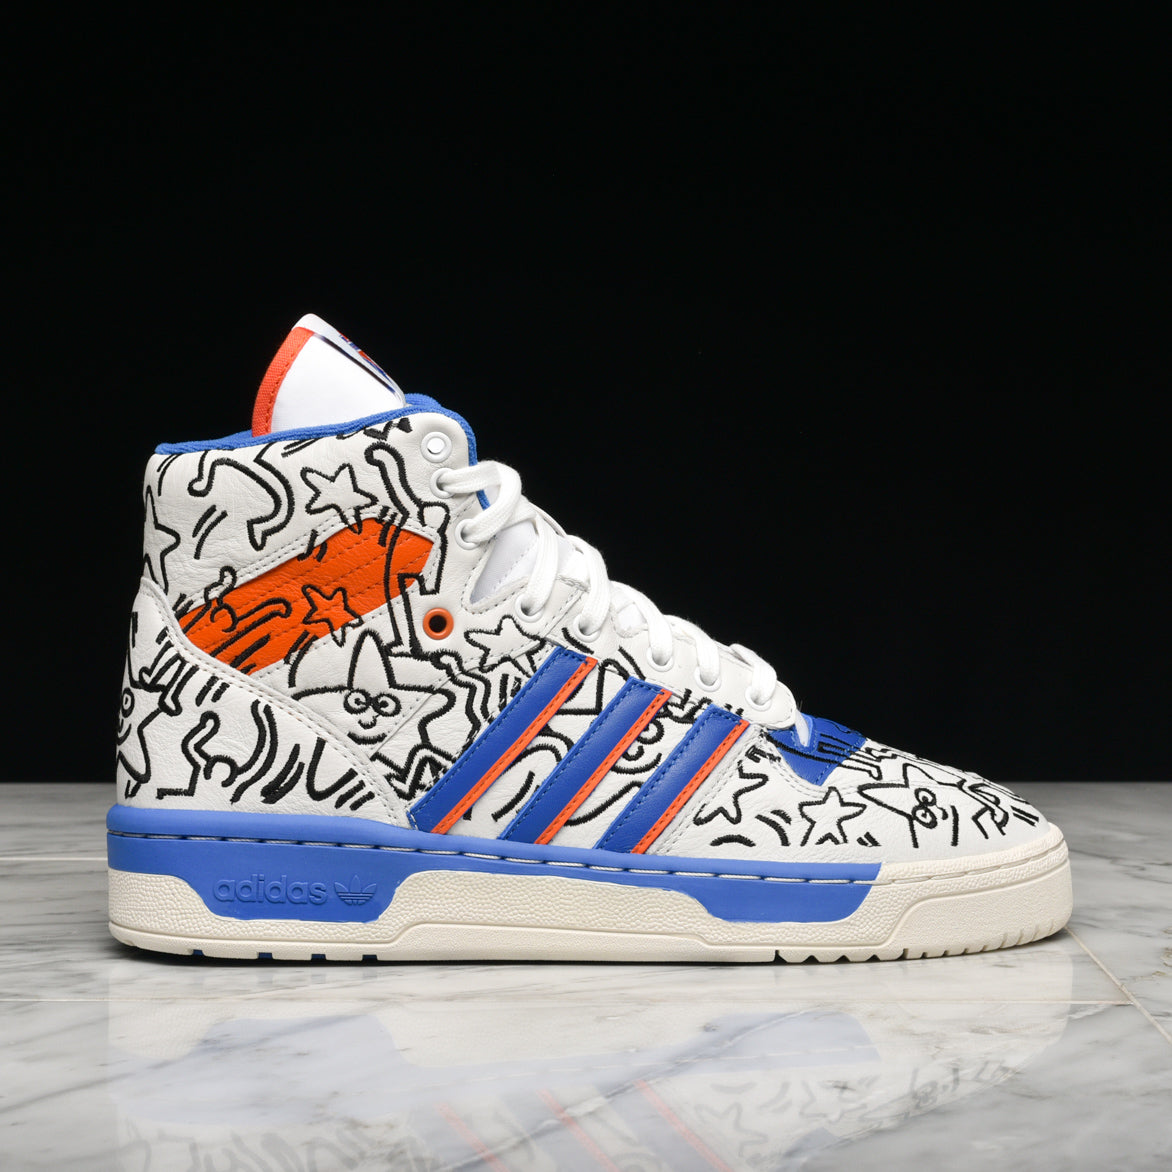 8c765c0a KEITH HARING X ADIDAS RIVALRY HI   lapstoneandhammer.com